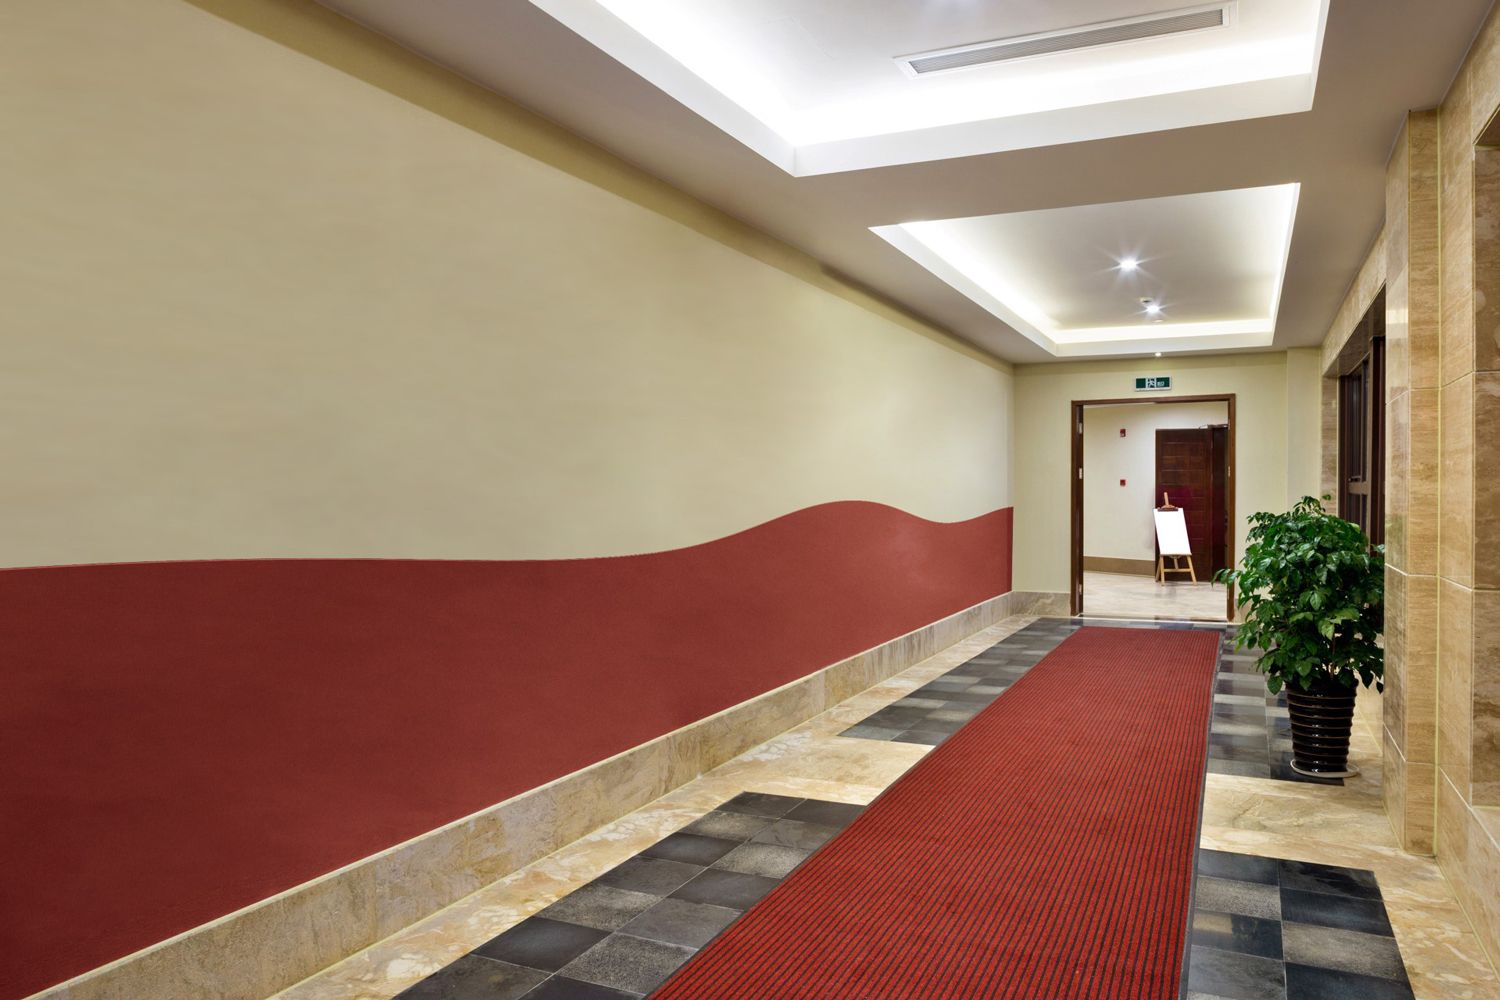 hallway with curved panels